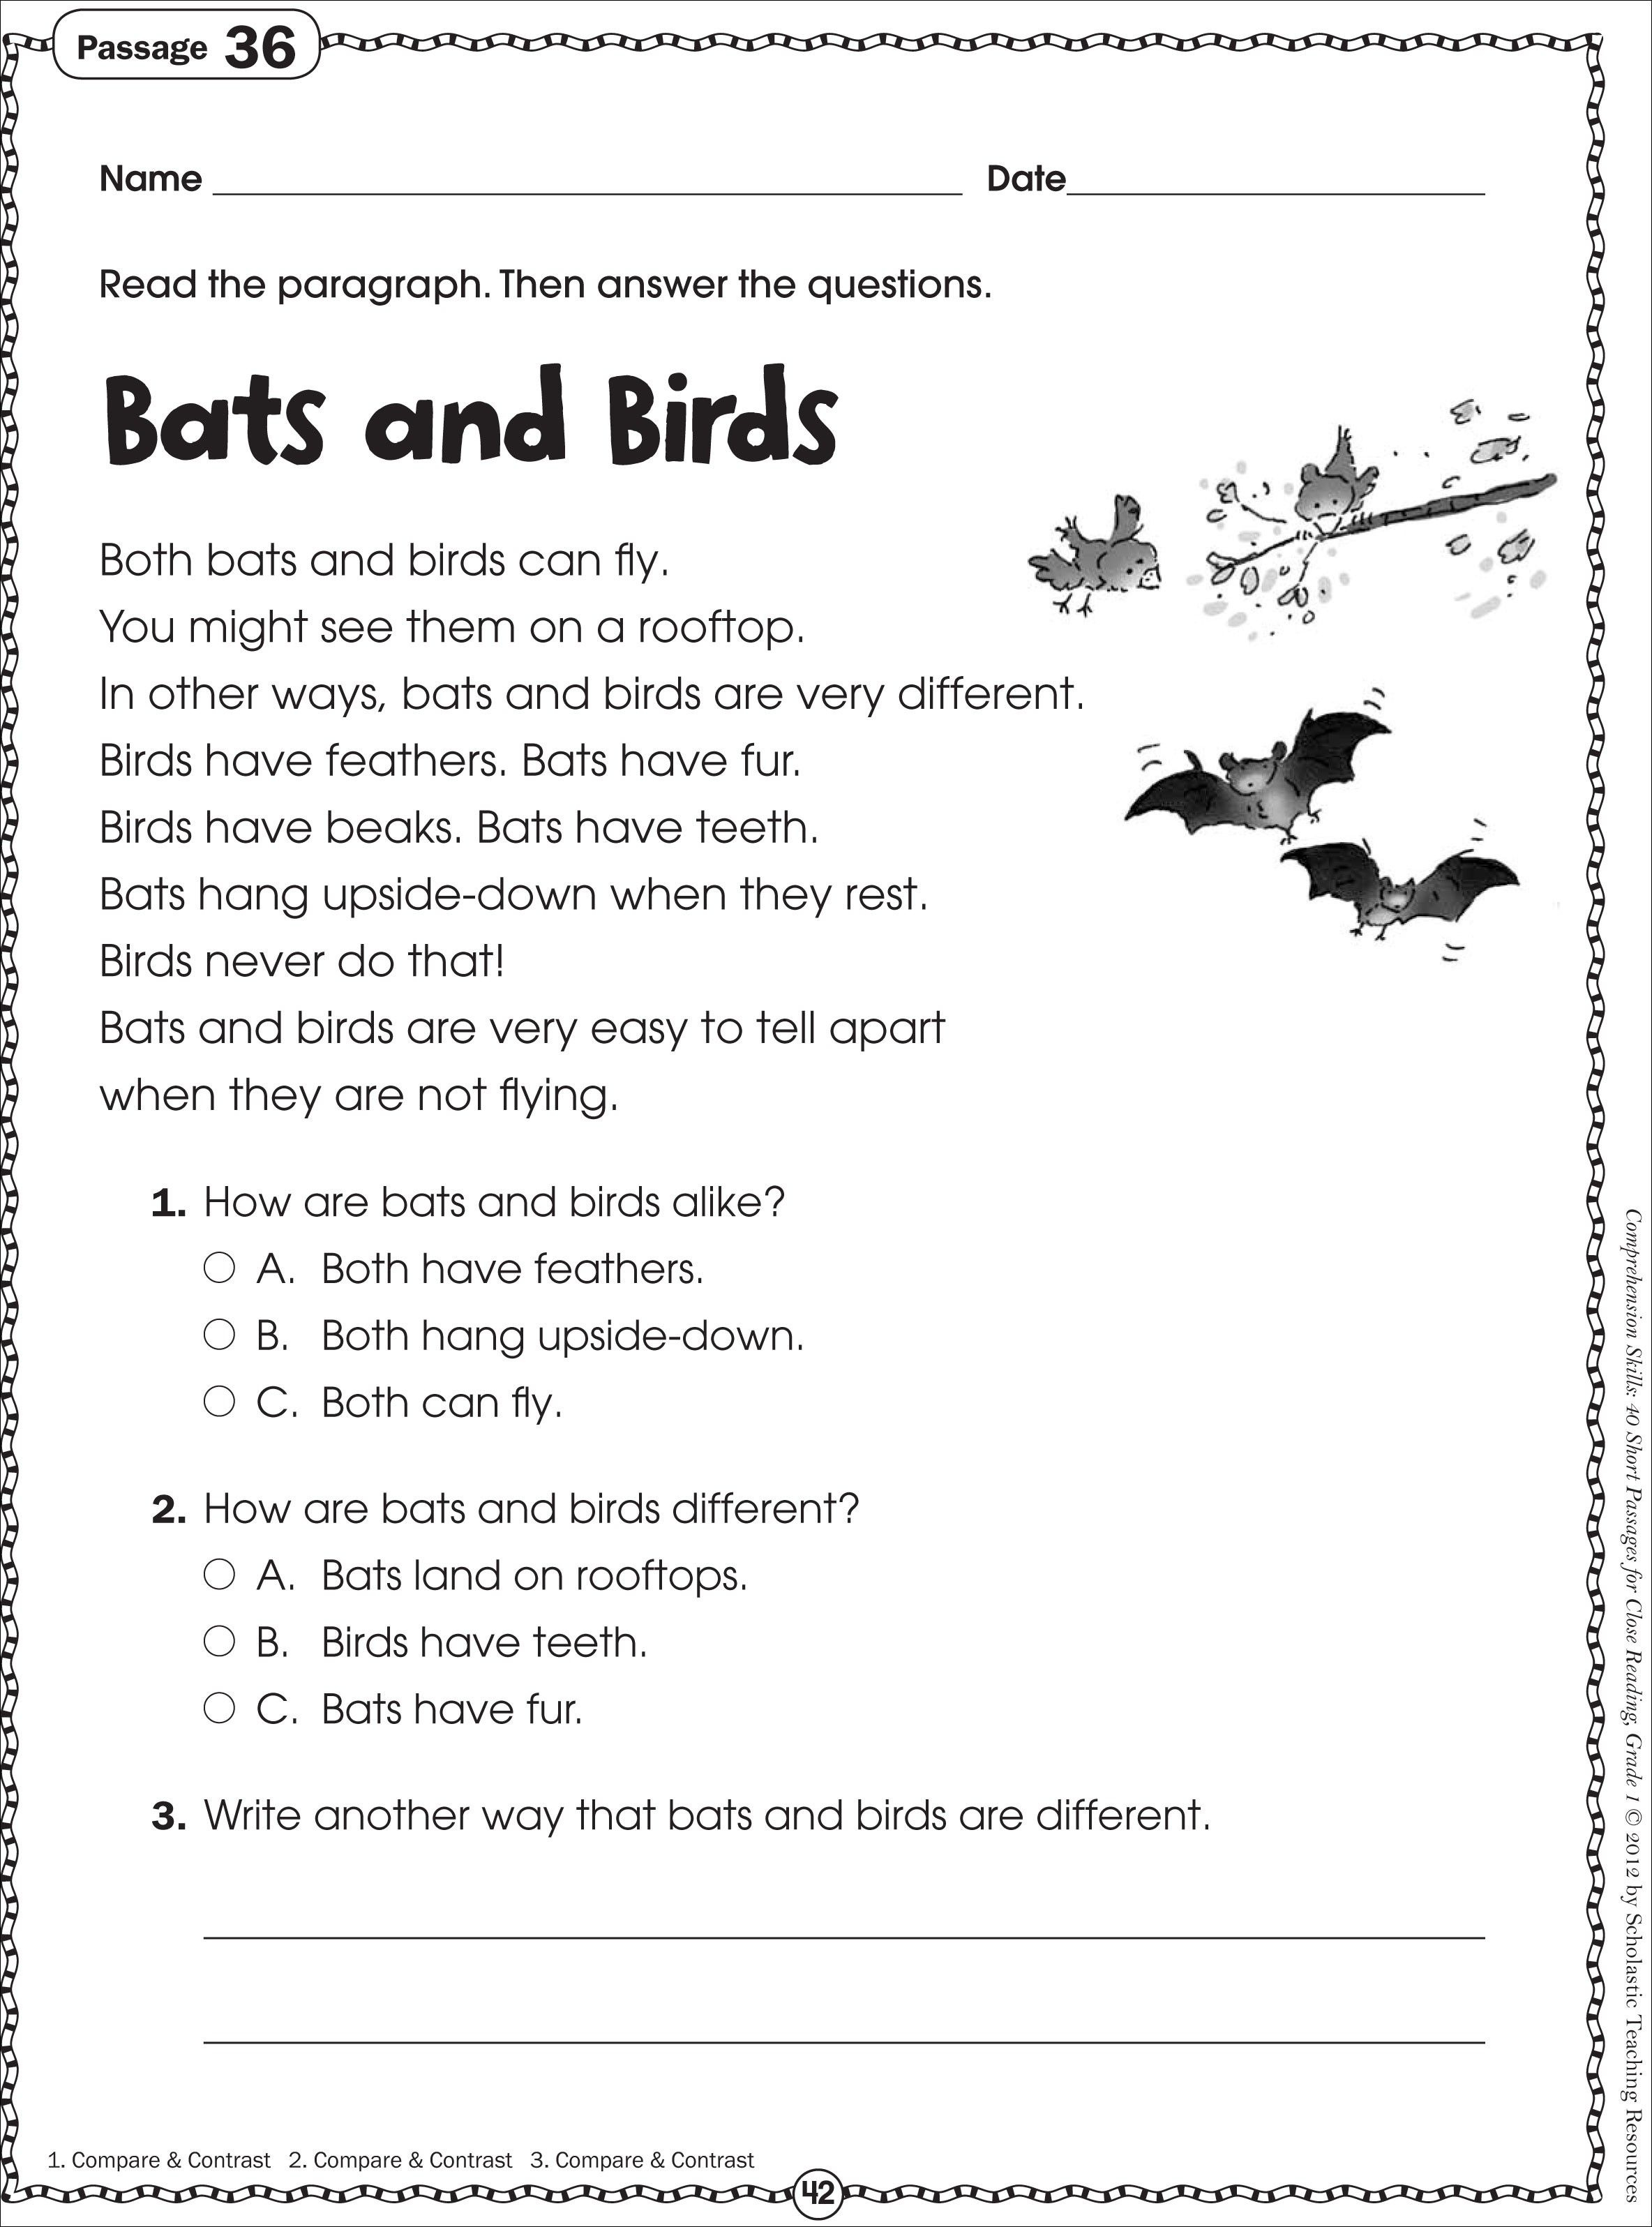 Free Printable Reading Comprehension Worksheets For 3rd